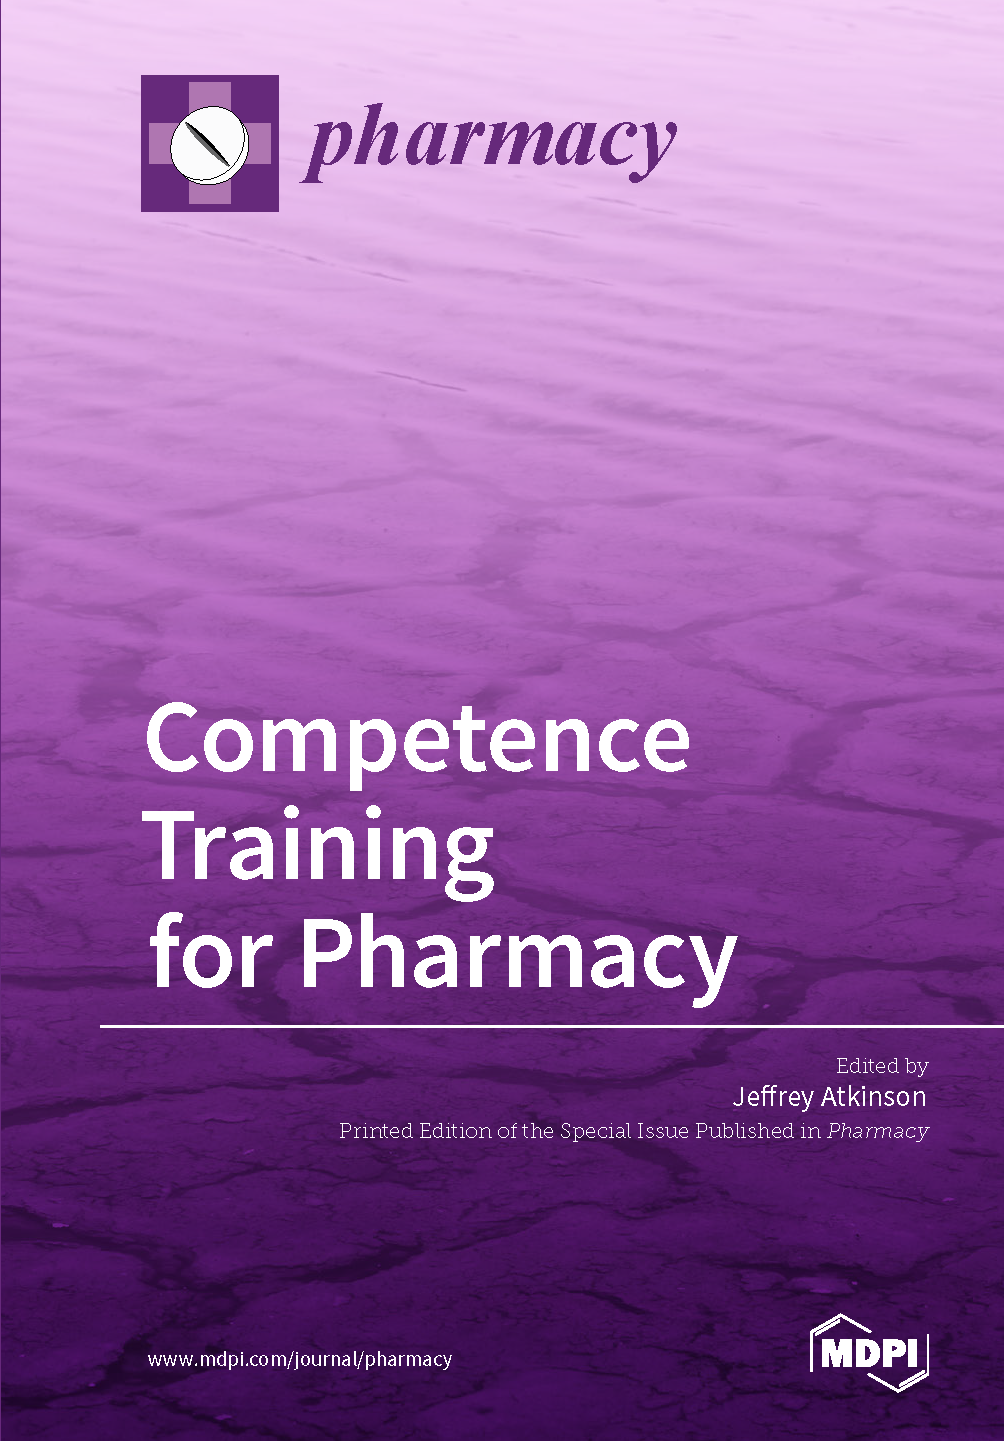 Competence Training for Pharmacy